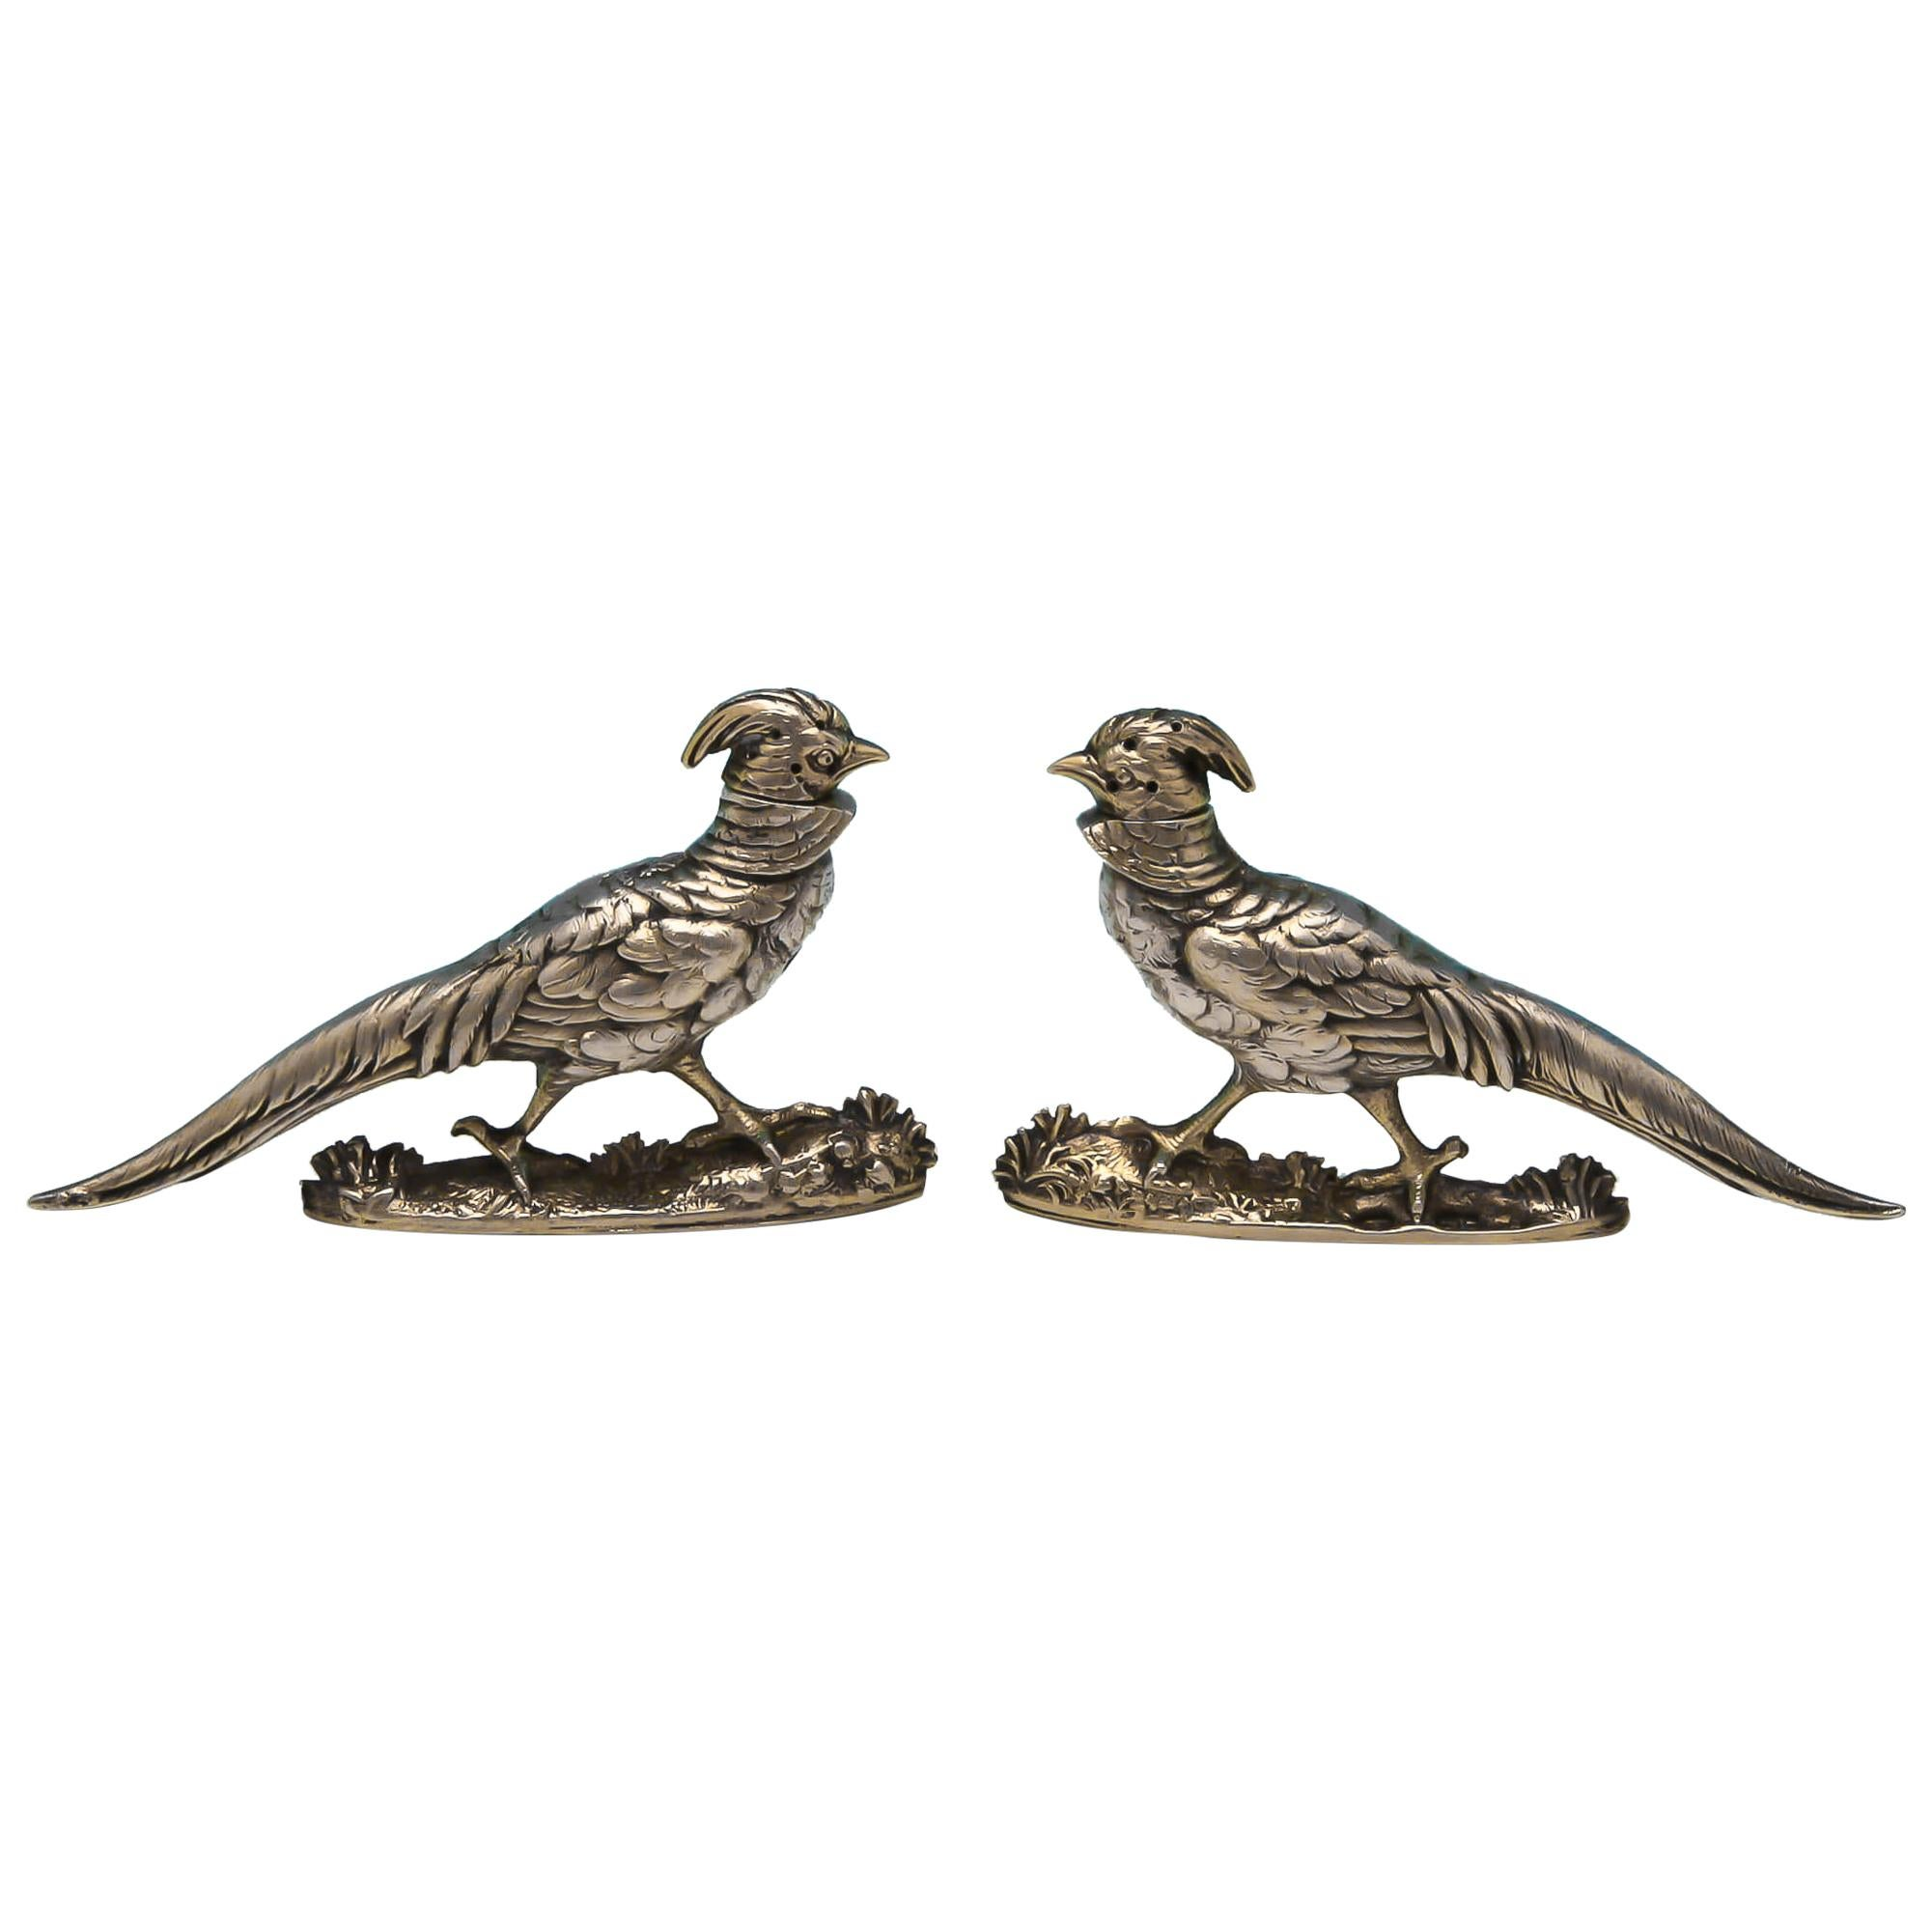 Antique Victorian Sterling Silver Novelty Pepper Pots in the Form of Pheasants